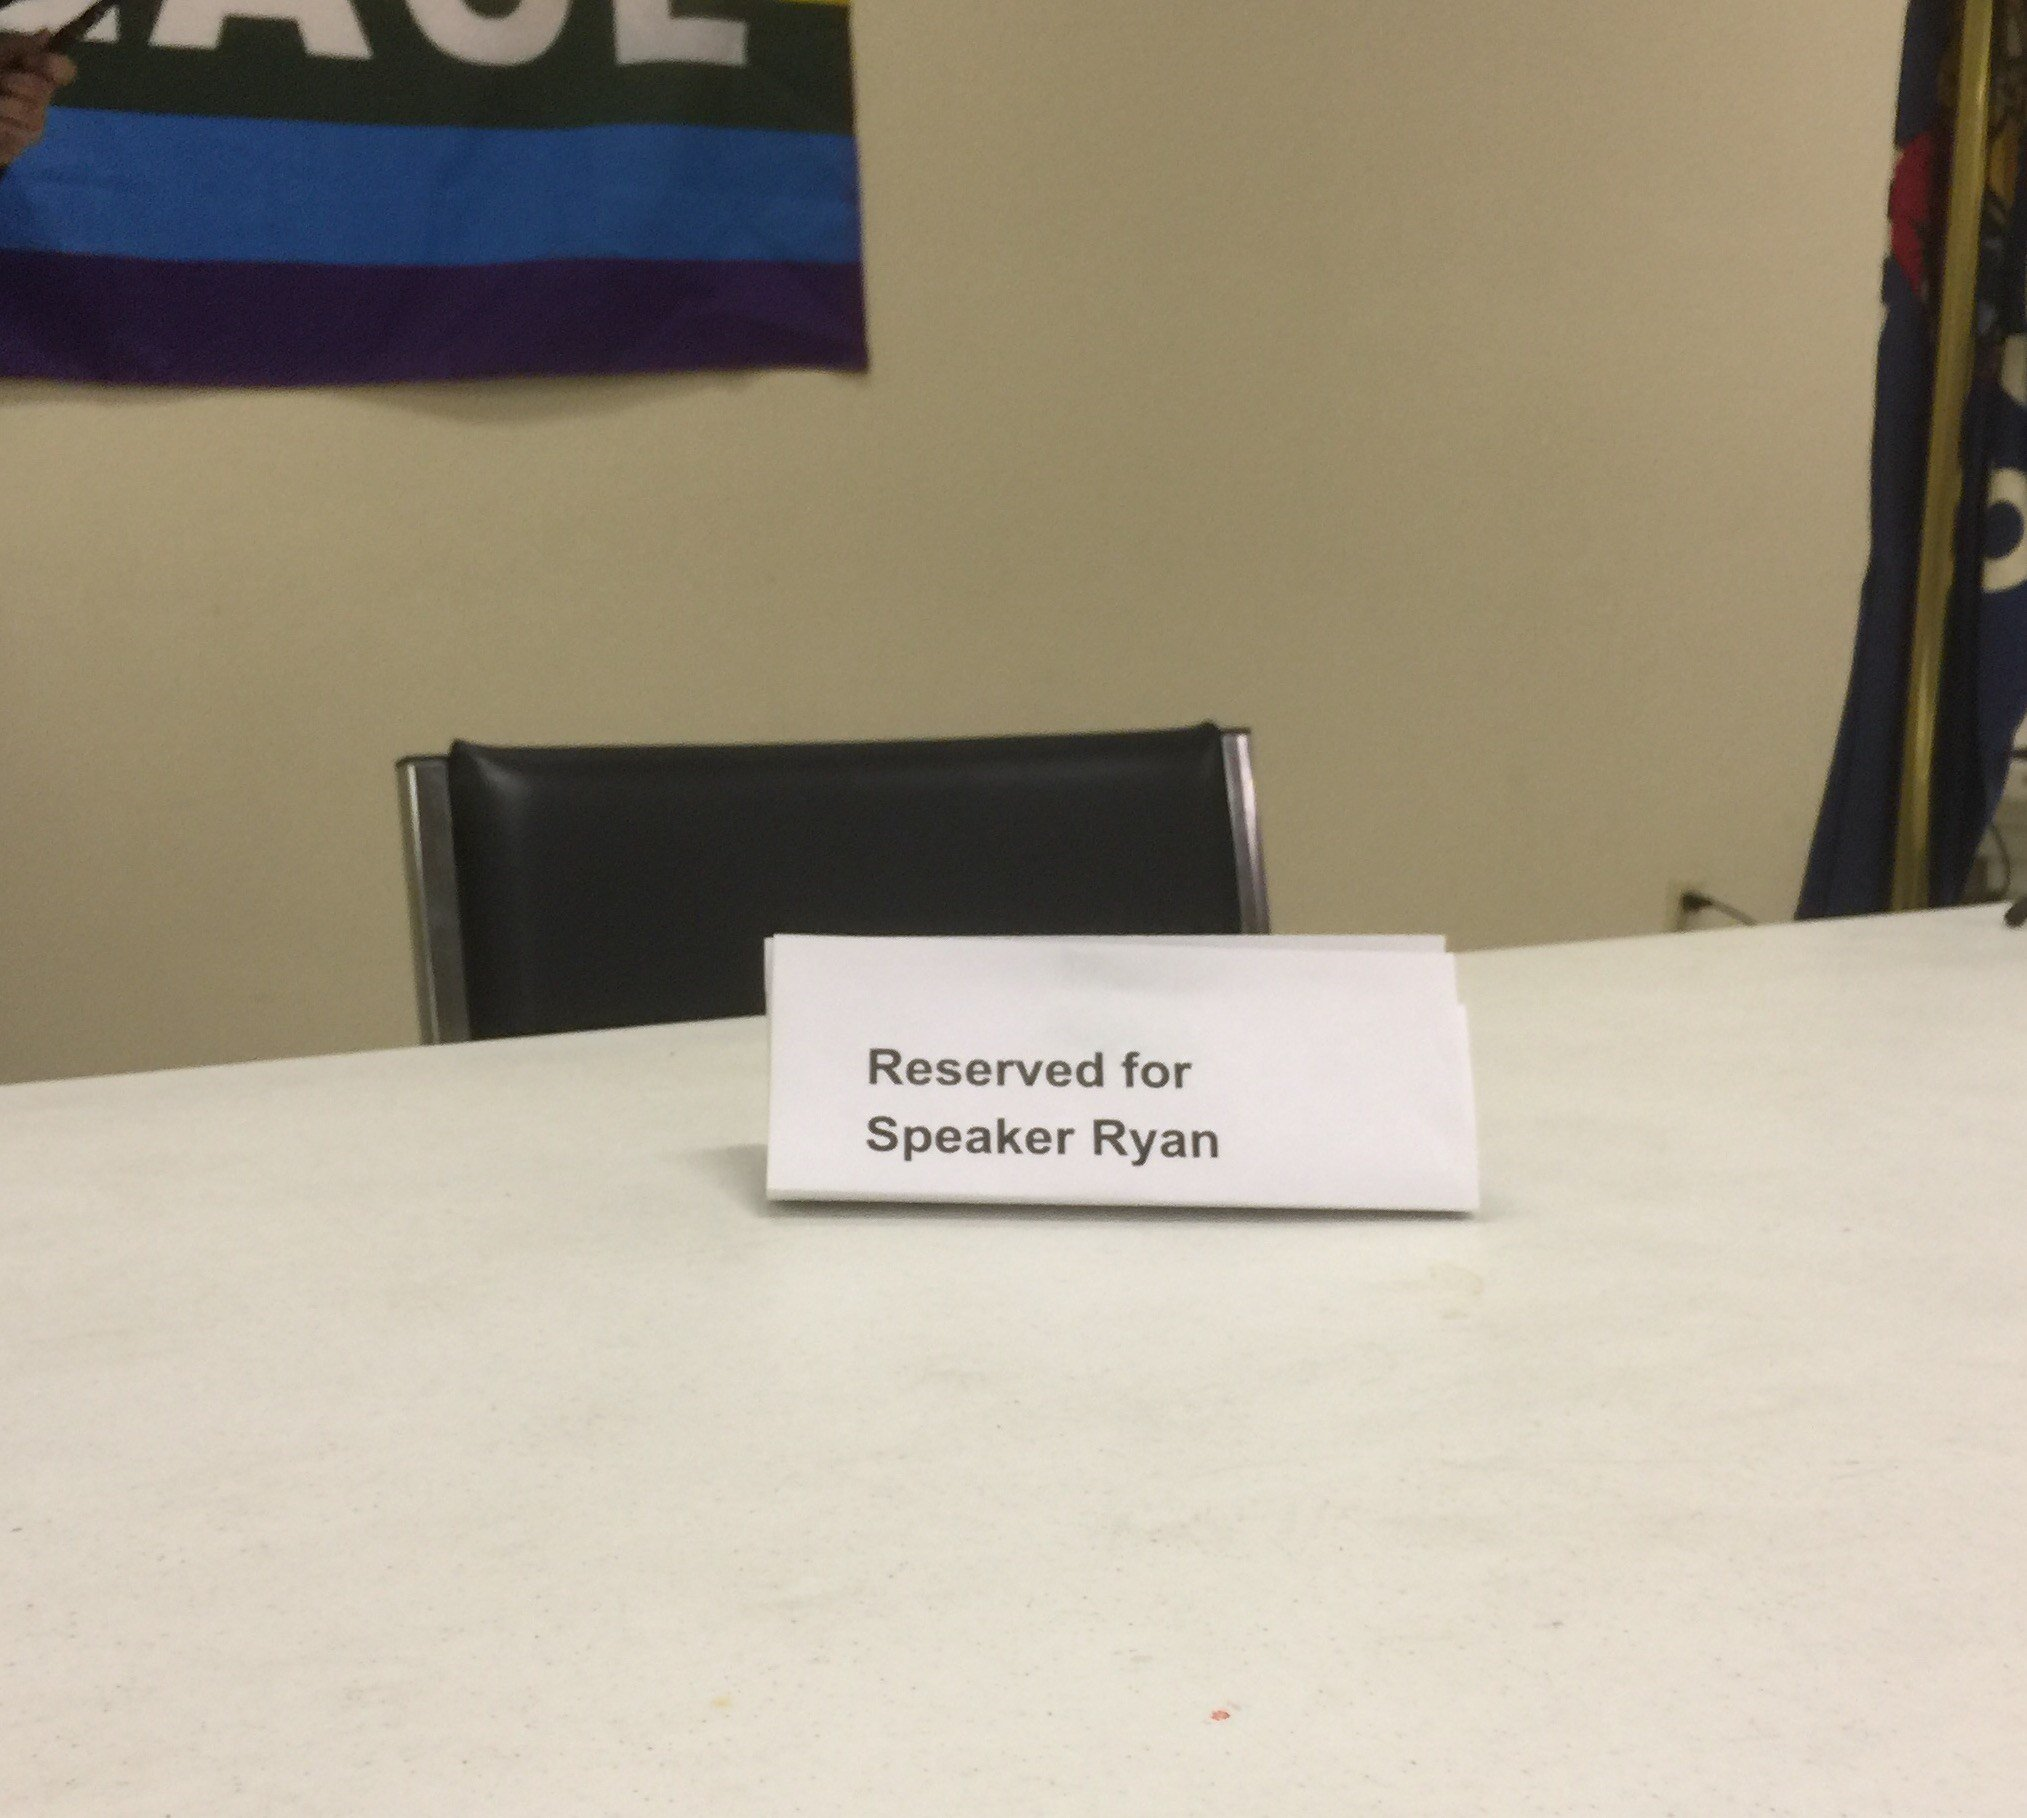 Chair reserved for House Speaker Paul Ryan at Janesville town hall meeting